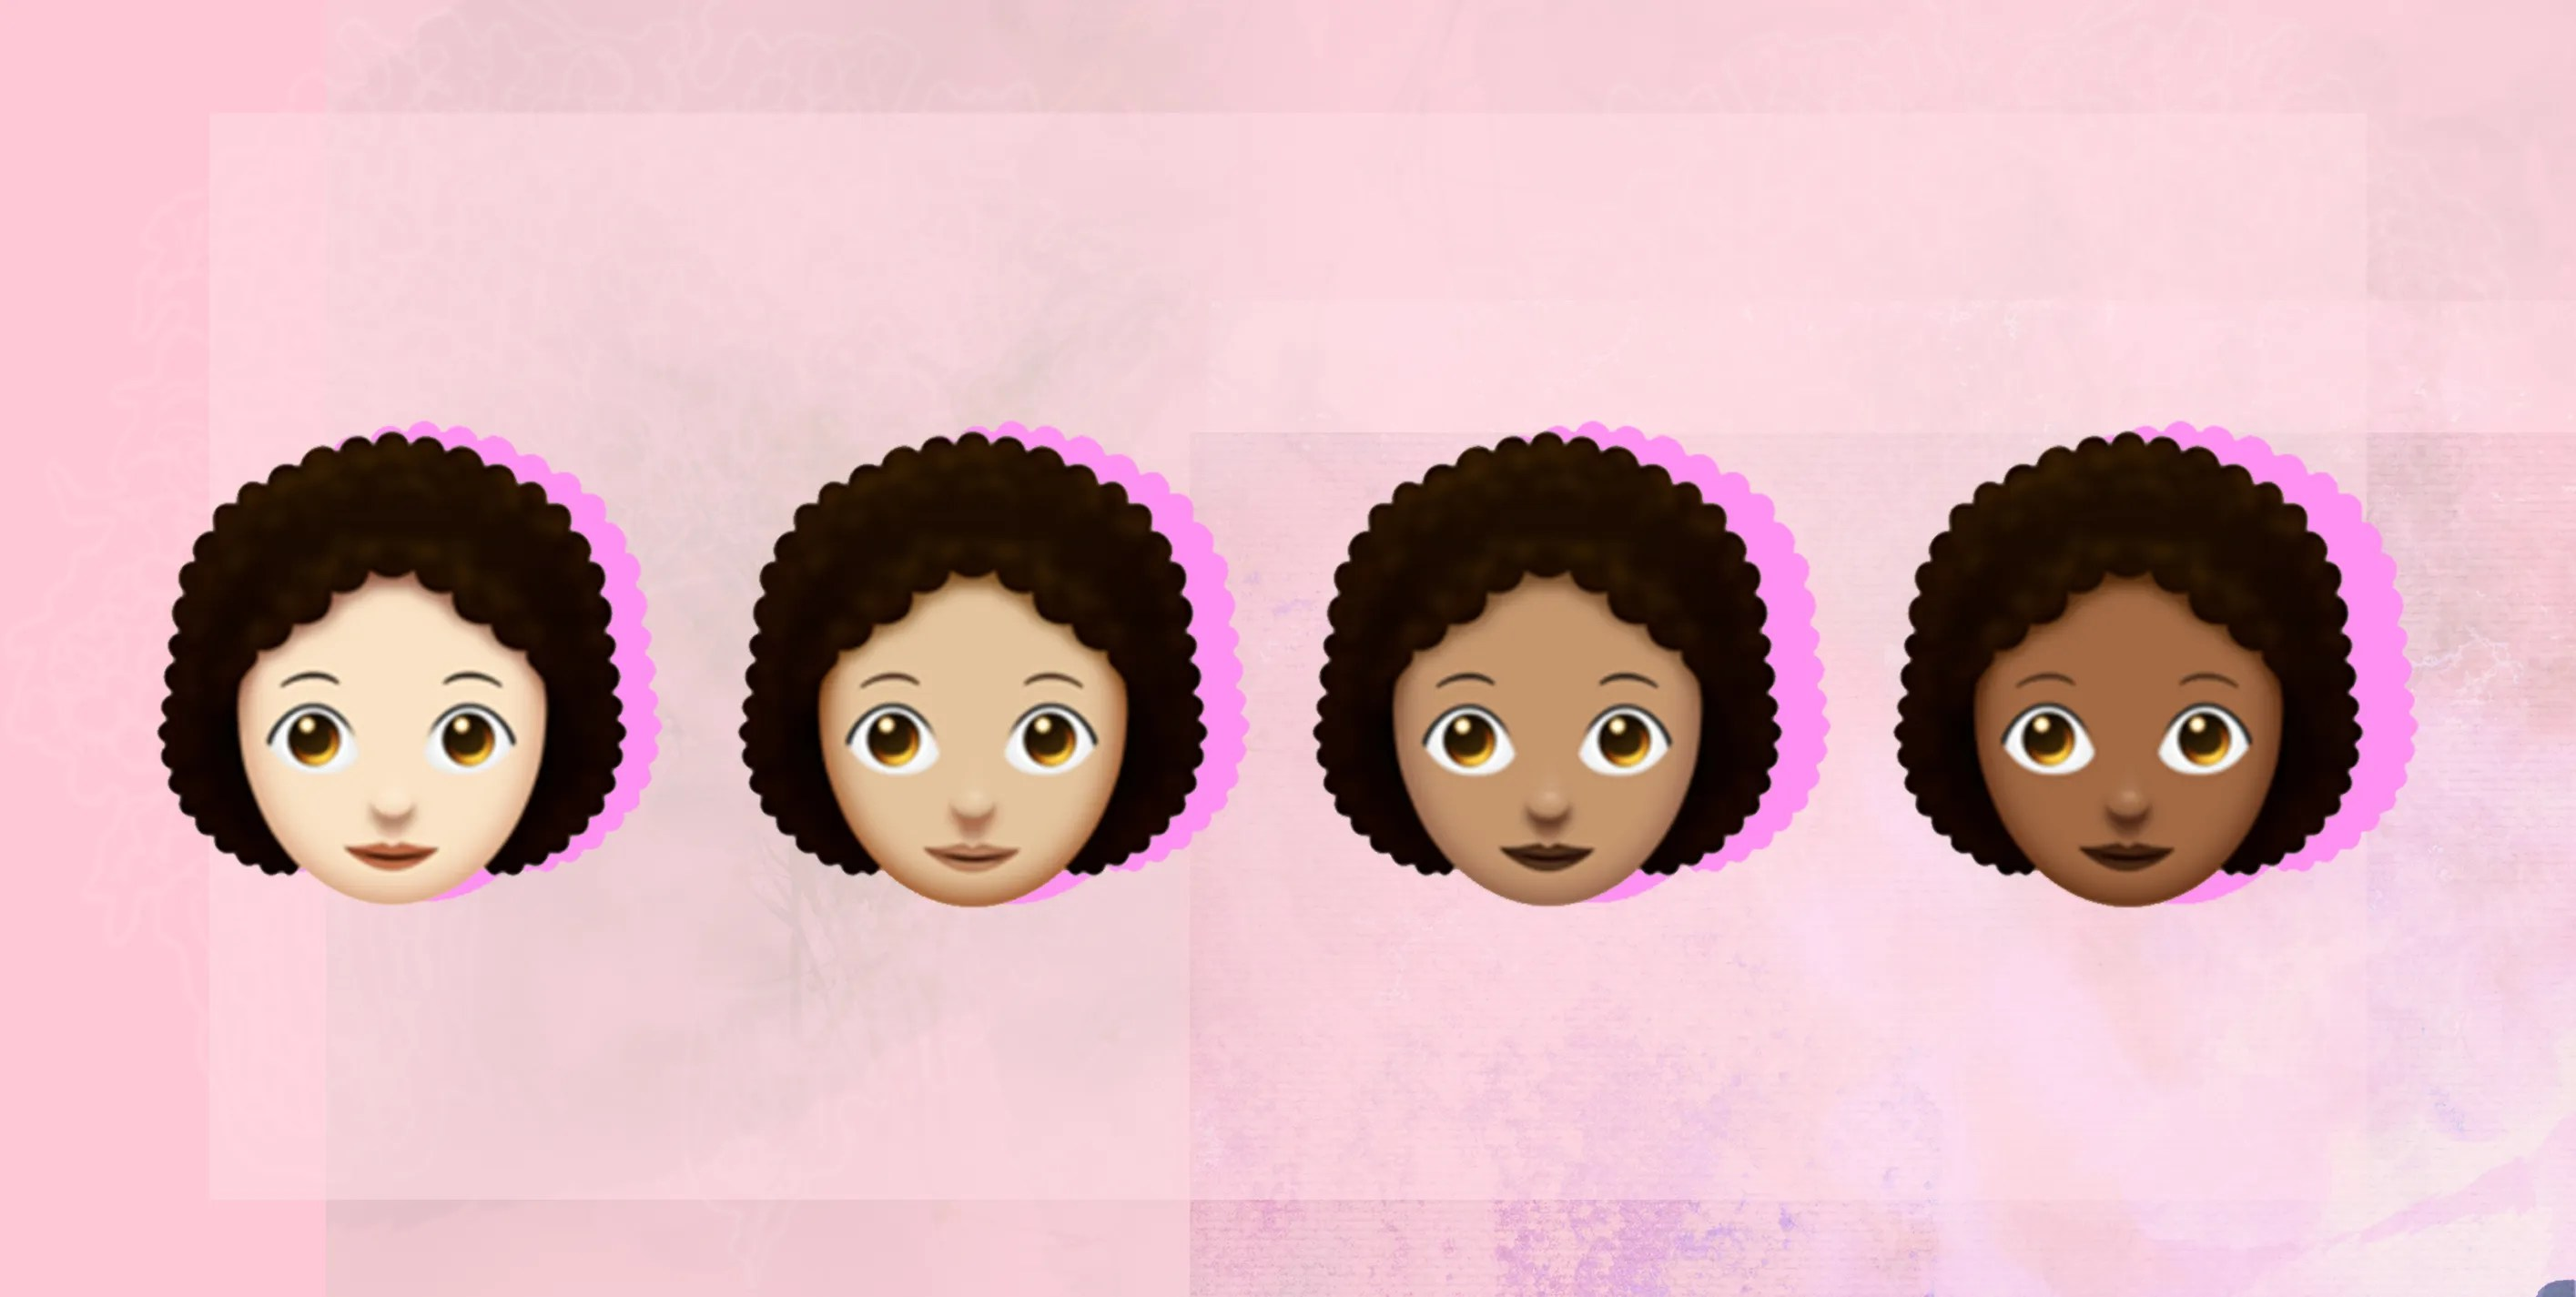 People Have Some Opinions About The New Curly Haired